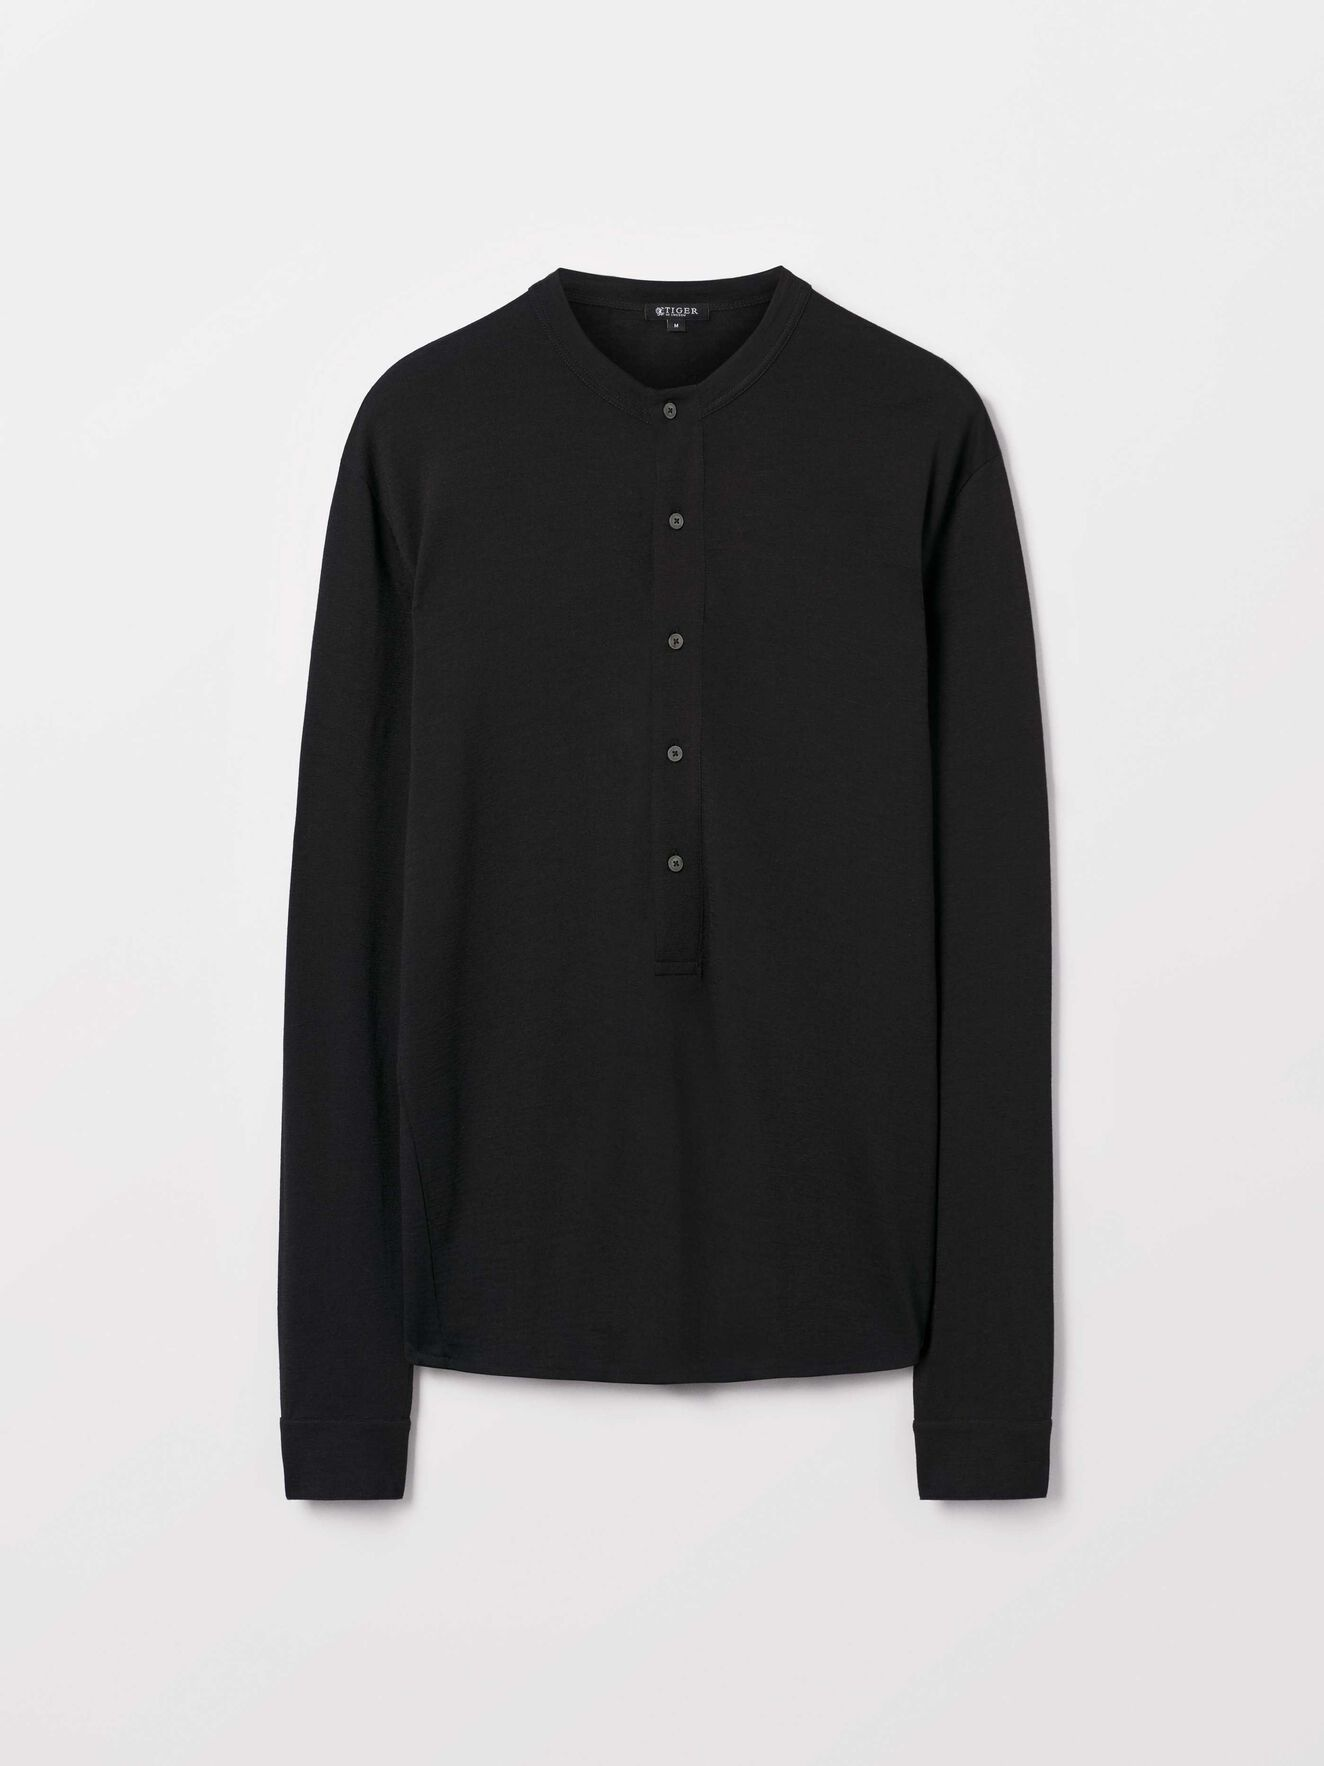 Danton T-Shirt in Black from Tiger of Sweden